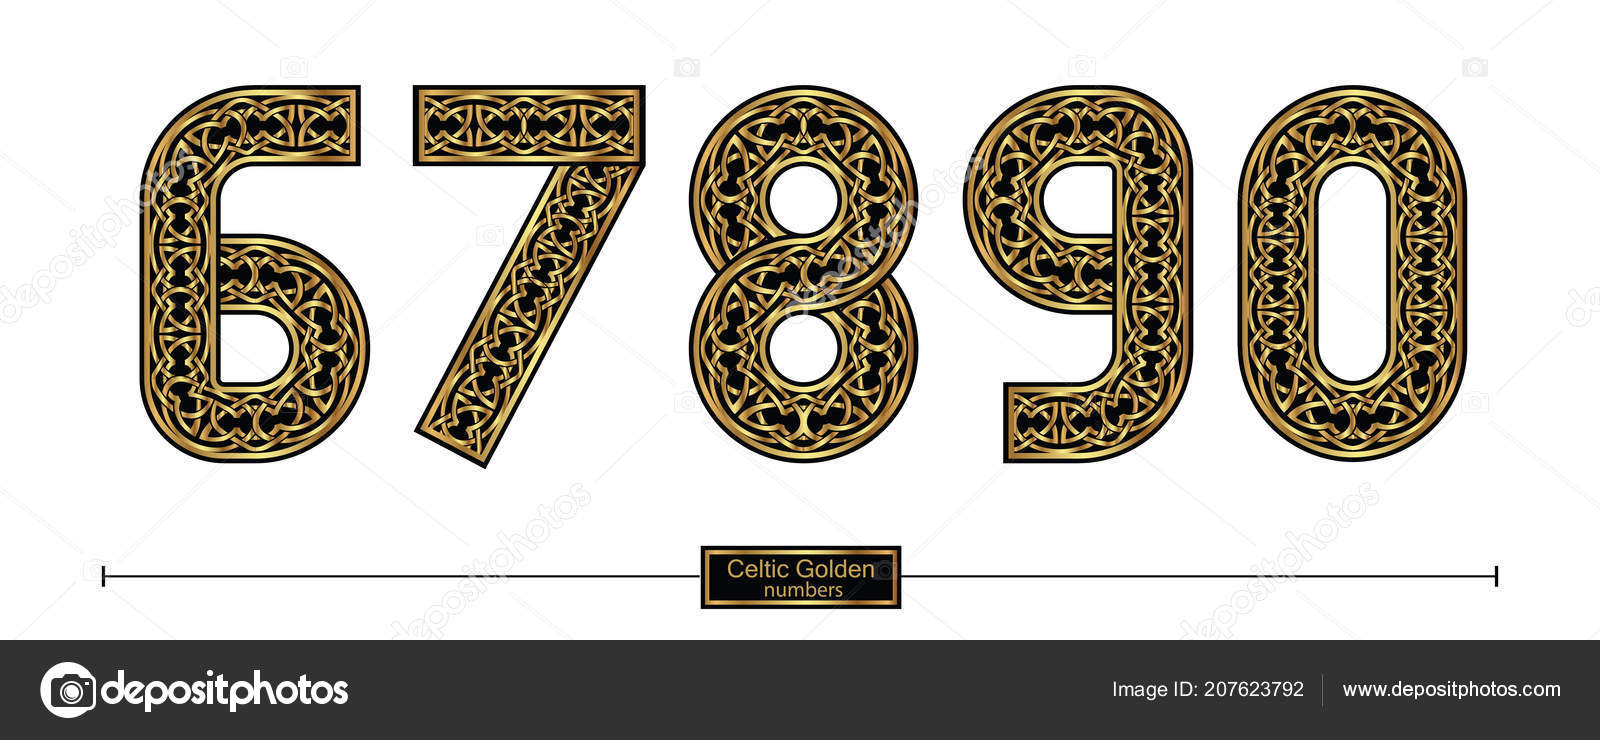 Vector Graphic Numbers Set Celtic Golden Style